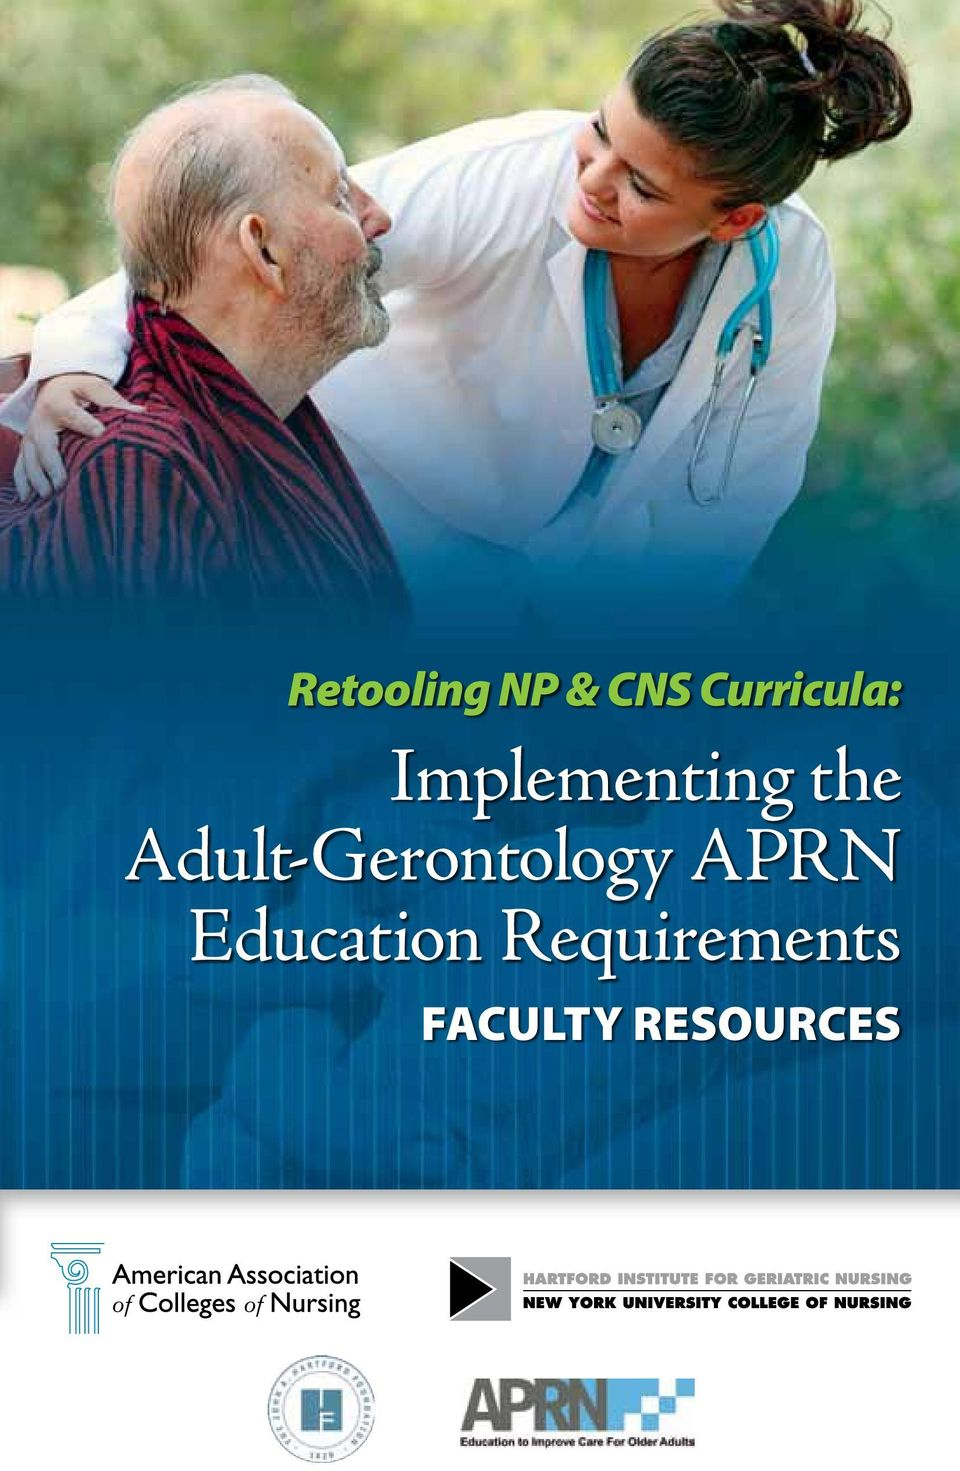 Adult-Gerontology APRN